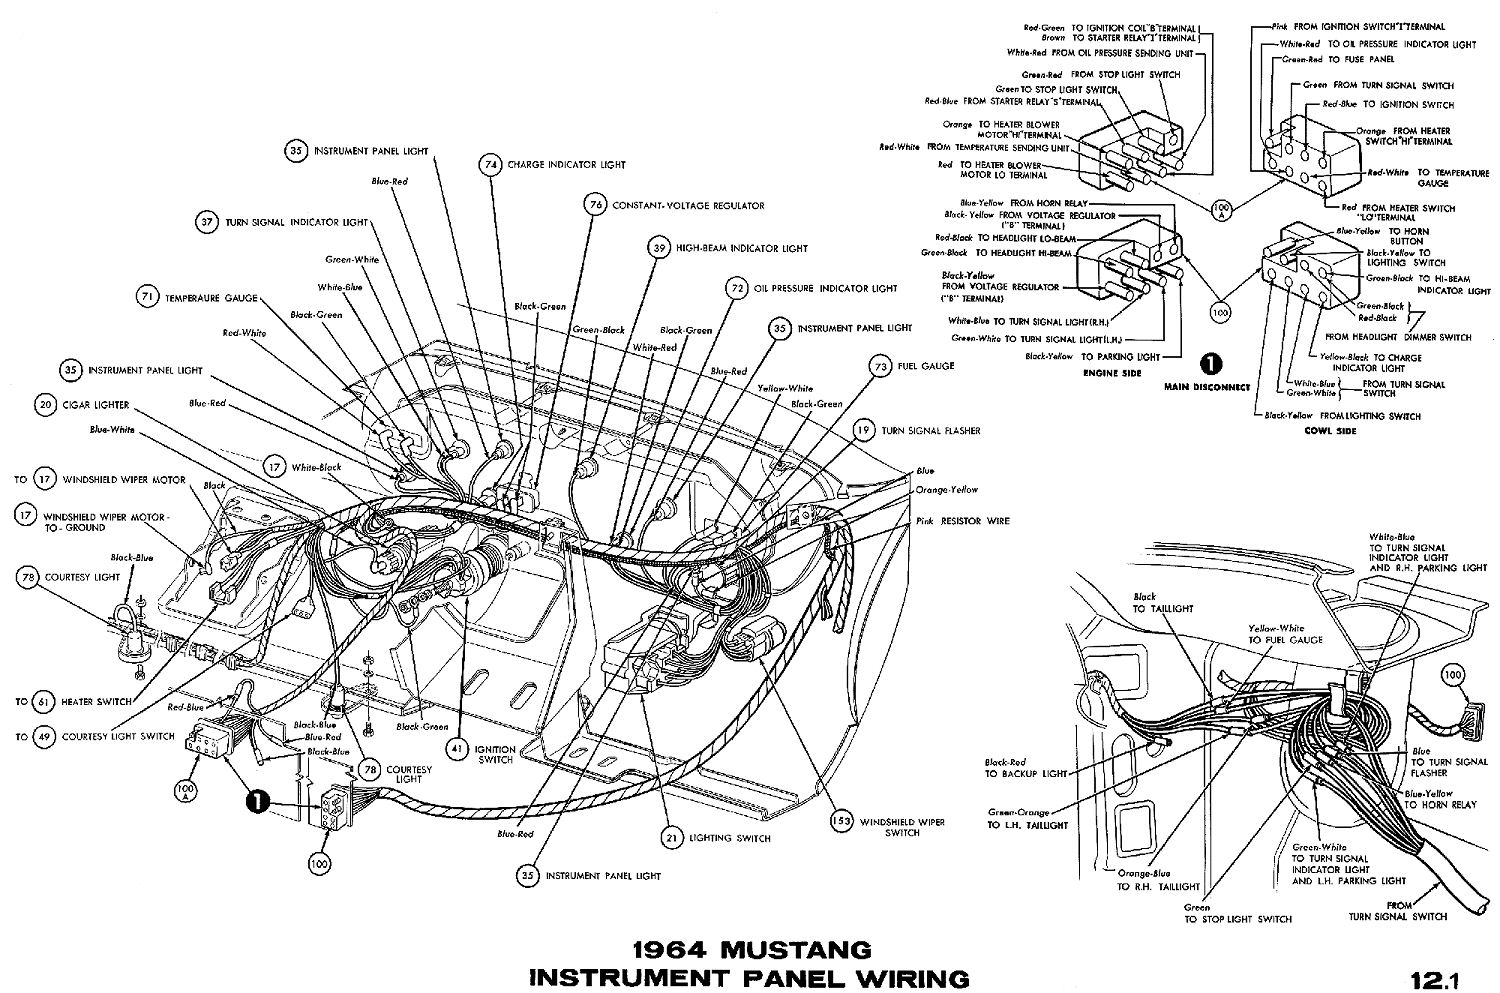 [DIAGRAM_5LK]  DR_8252] Ford Mustang Wiring Diagram On 1965 Mustang Horn Relay Wiring  Diagram Schematic Wiring | 1966 Mustang Instrument Wiring Diagram |  | Mill Ultr Mohammedshrine Librar Wiring 101